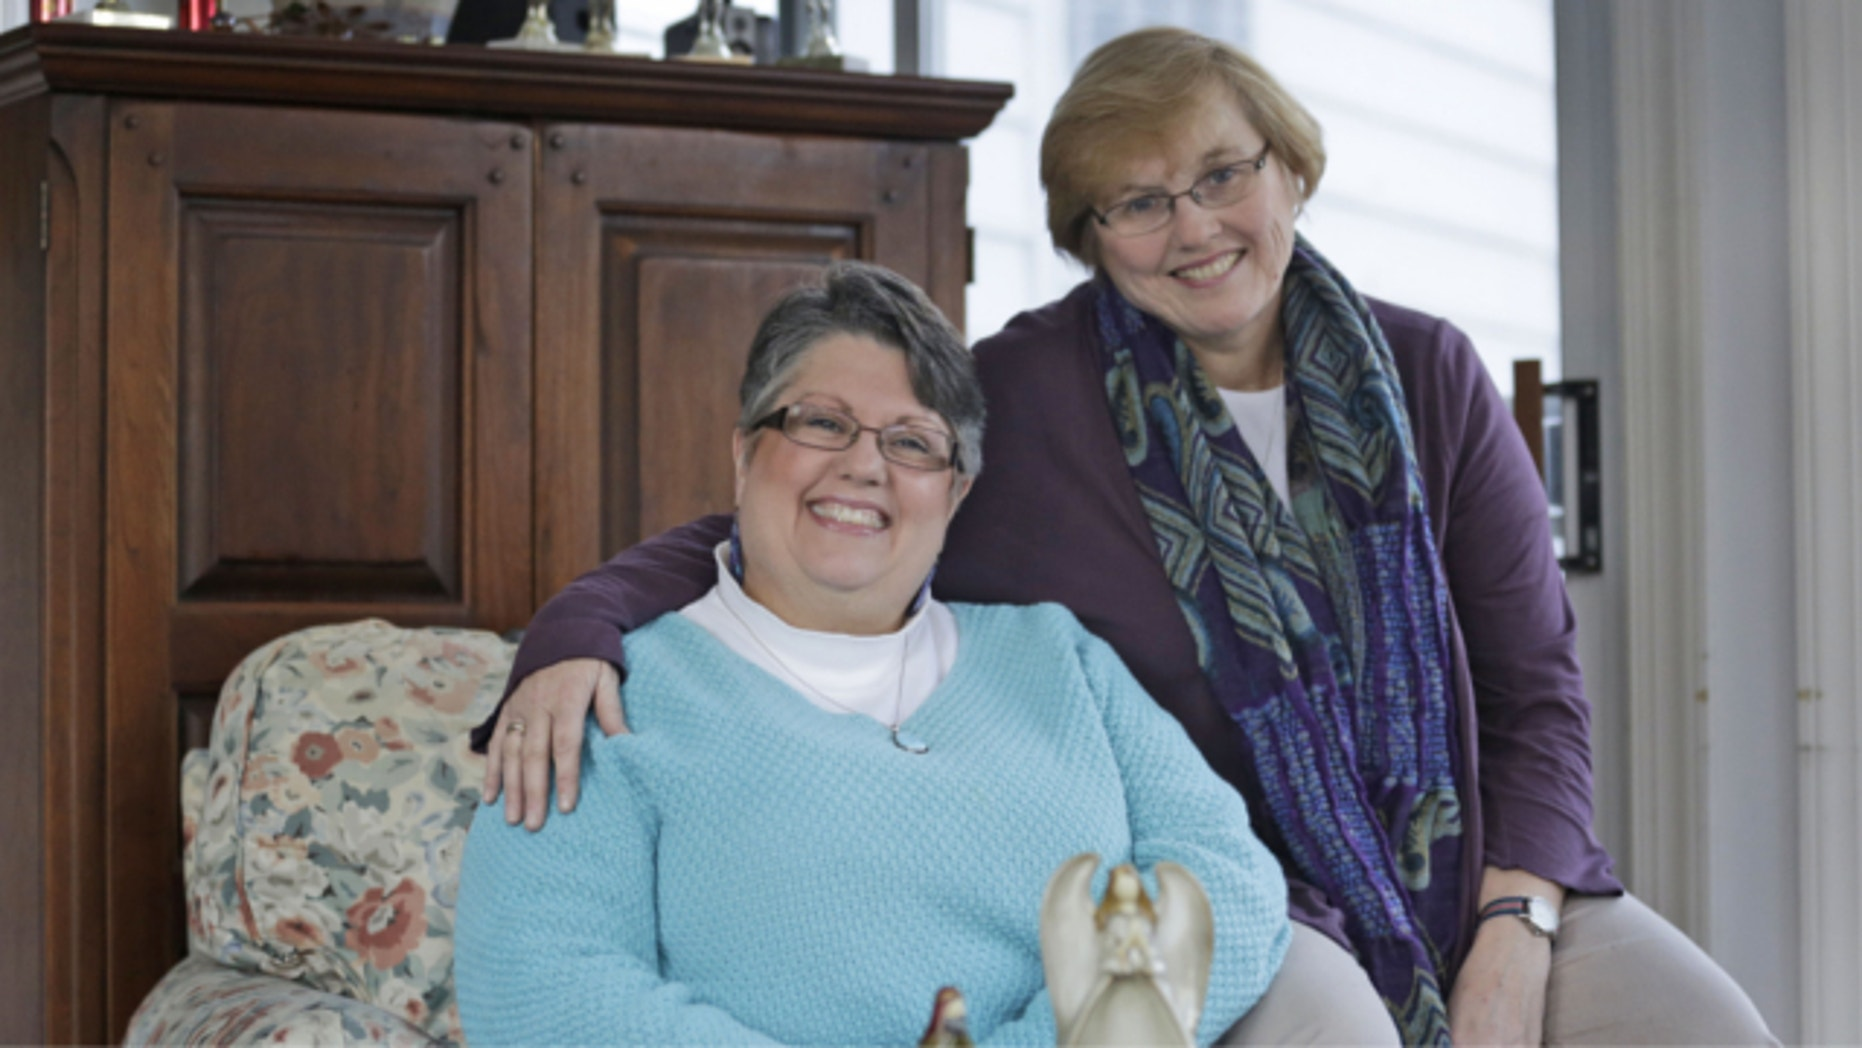 FILE: Nov. 25, 2013: Carol Schall, left, and her partner, Mary Townley, are shown at their home in Richmond, Va. The couple, who were married in California in 2008, decided to join a lawsuit challenging Virginia's ban on same-sex marriage.